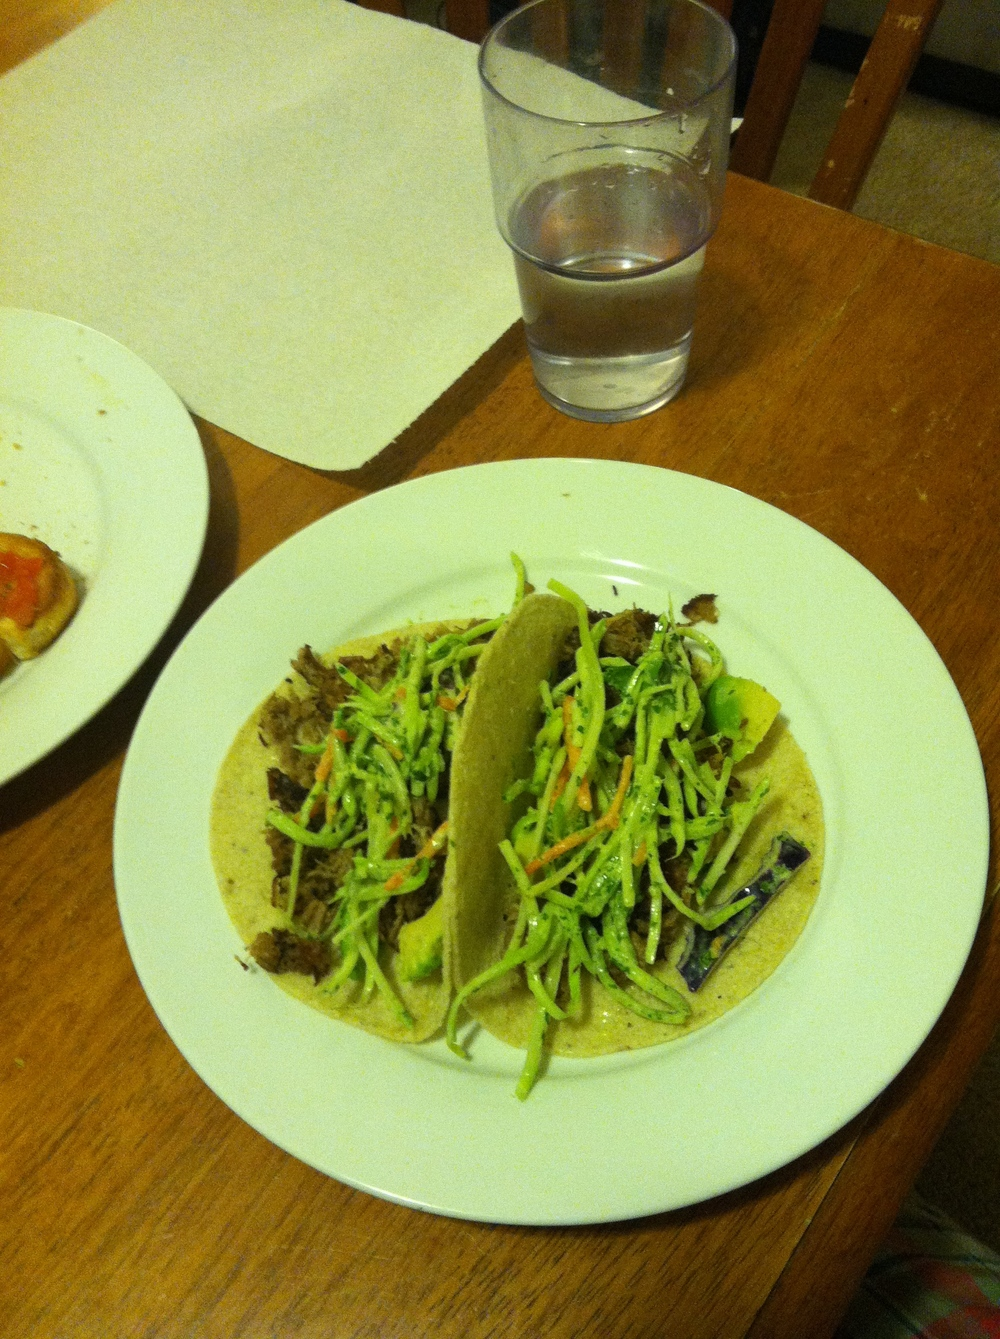 Served with broccoli slaw with cilantro dressing on tortillas